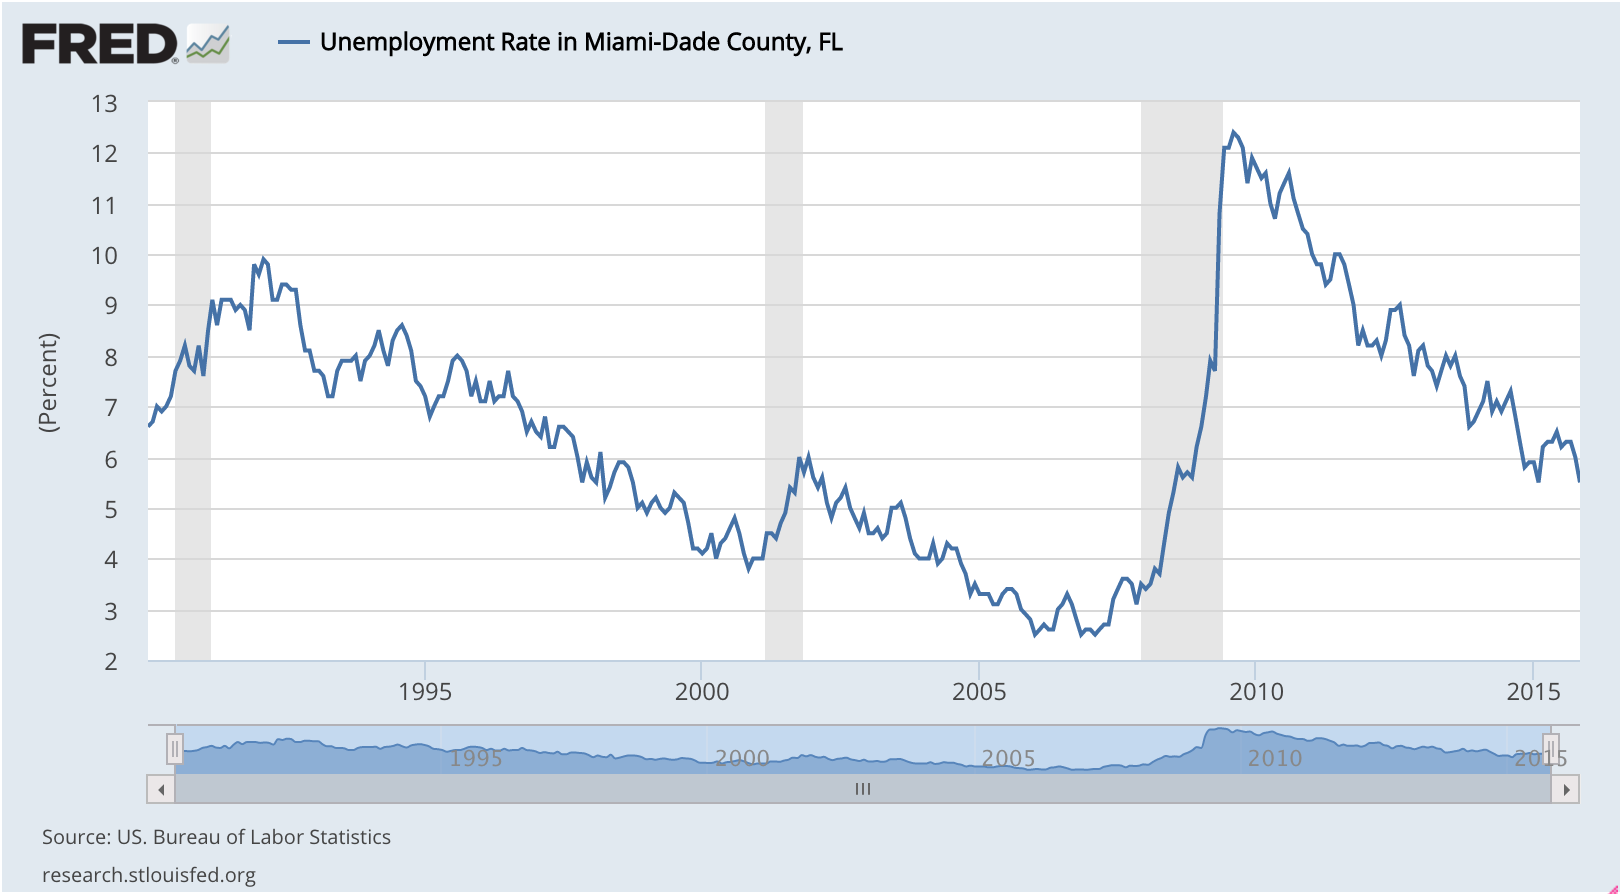 Unemployment Rate in Miami-Dade County